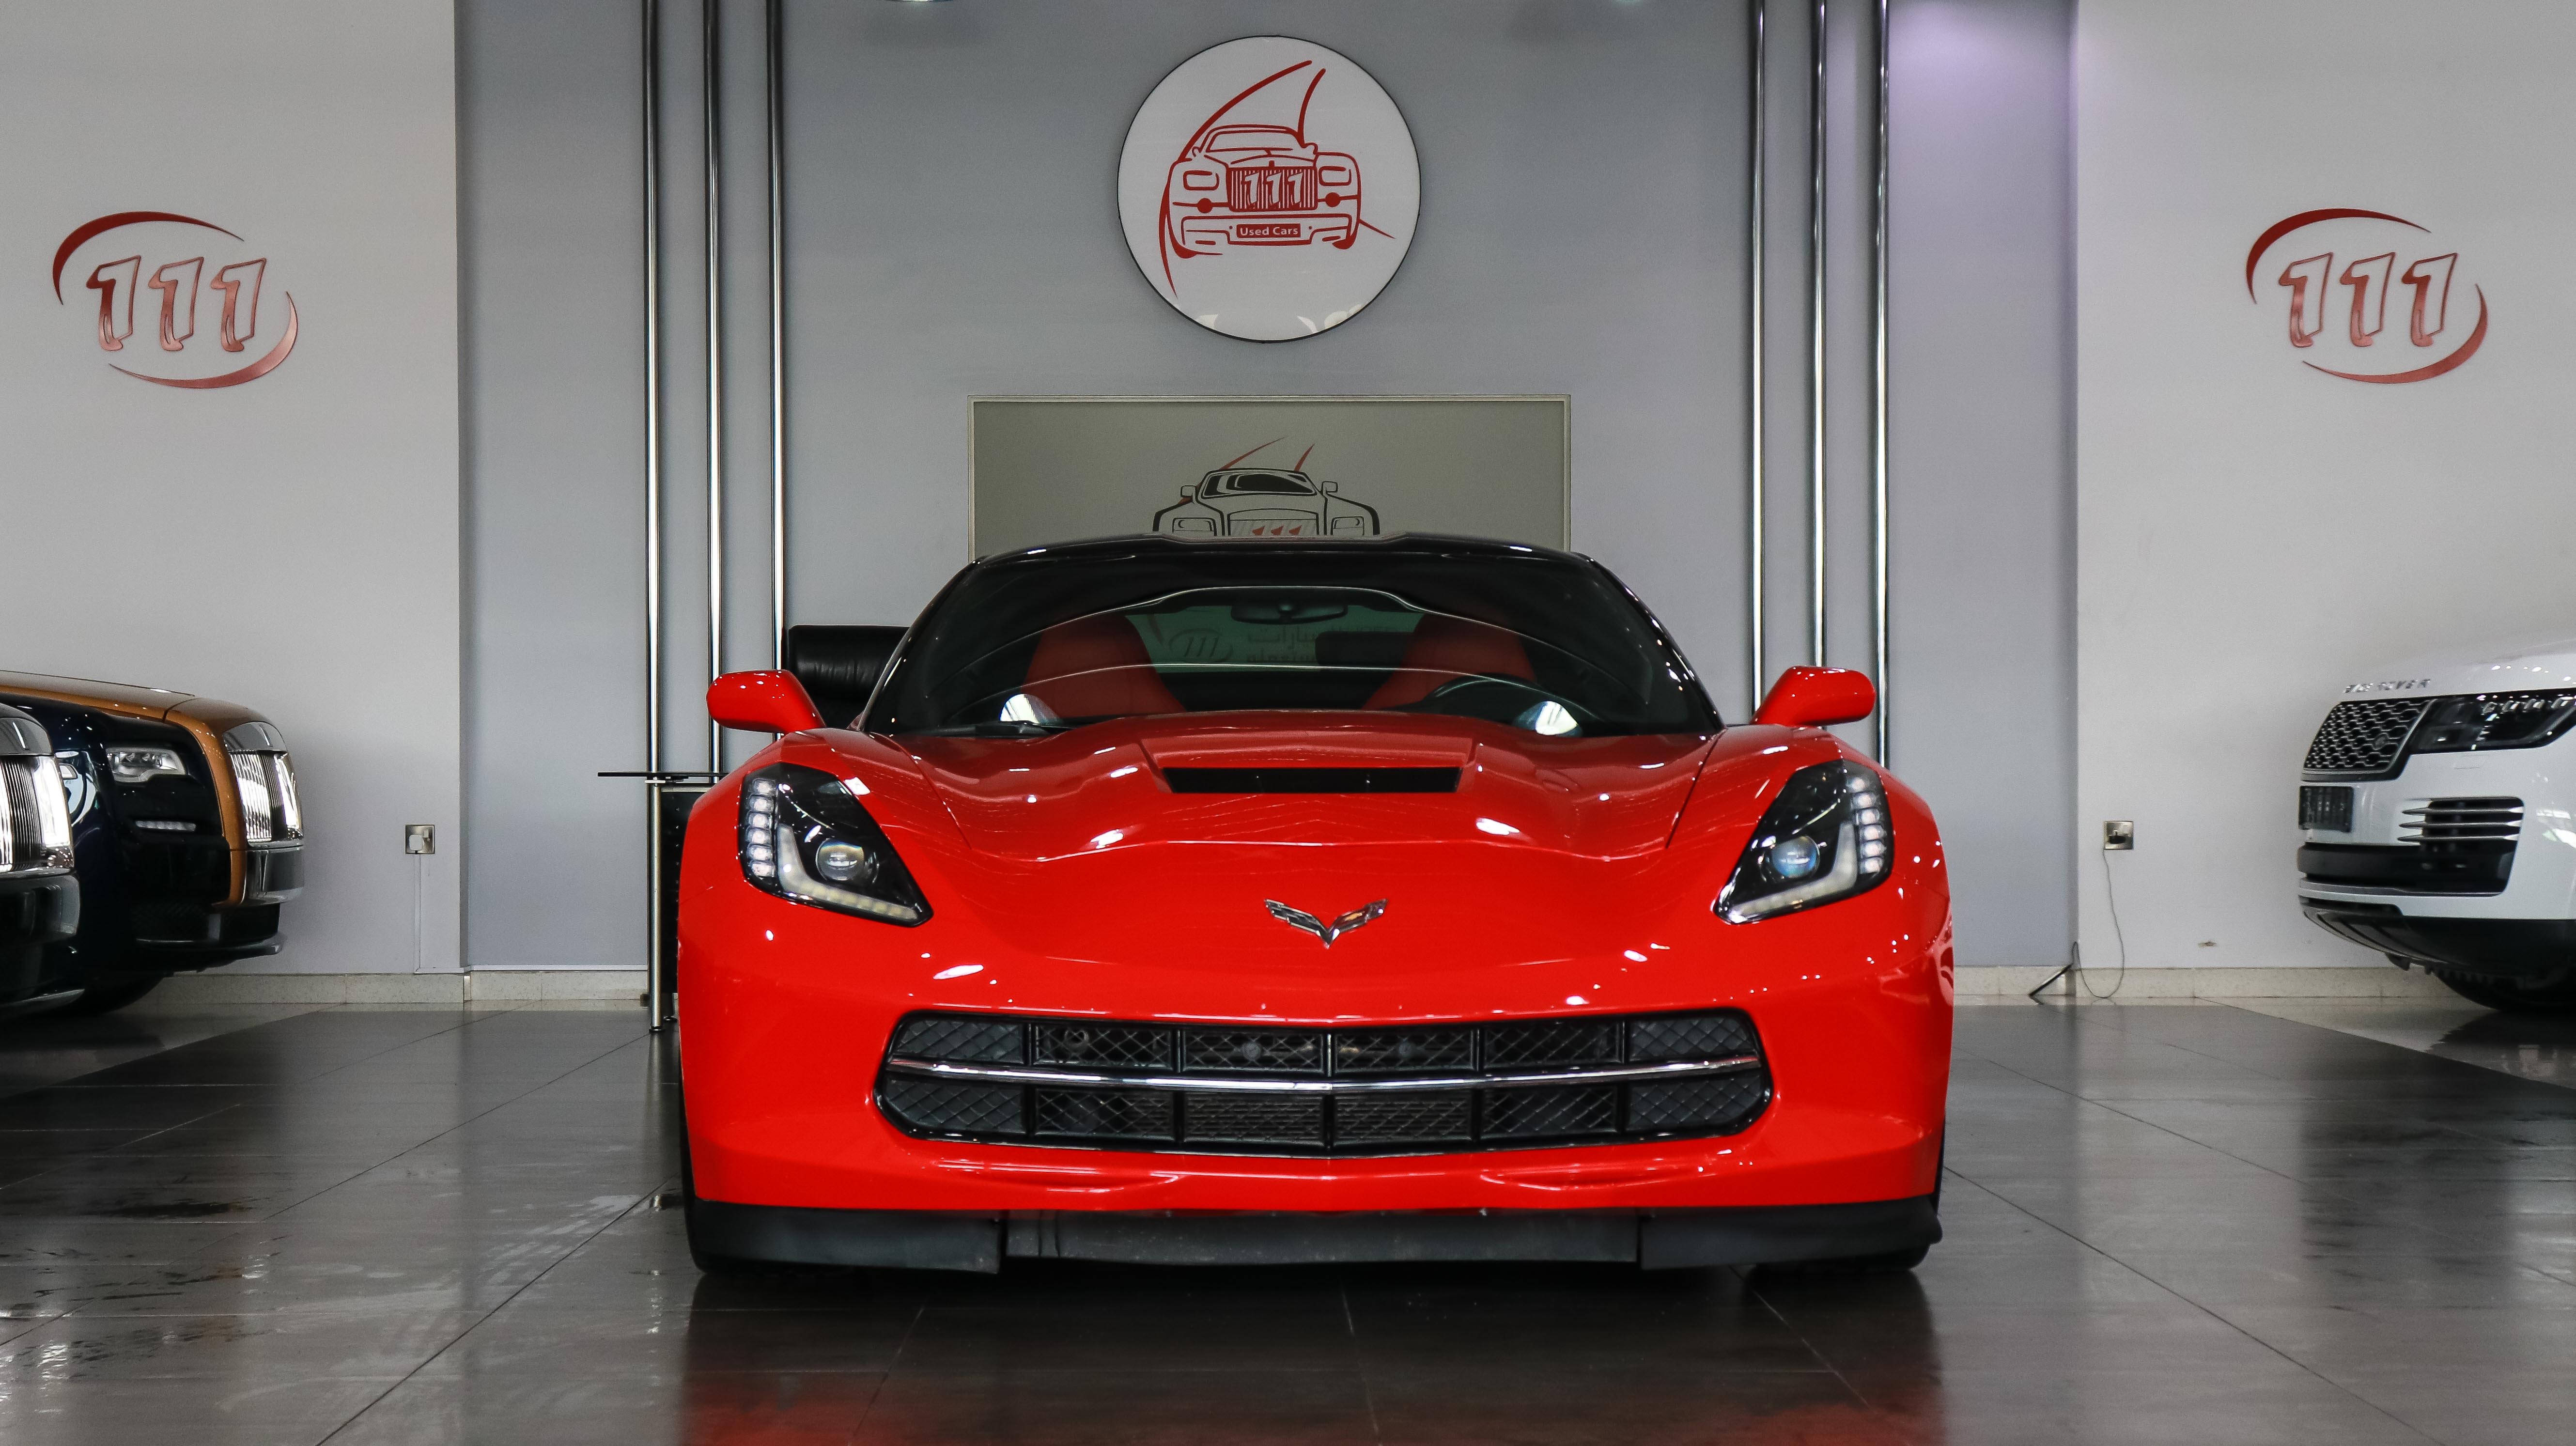 2019-Chevrolet-Corvette-Stingray-6.2-L-V8-Red-Red-import-02.jpg